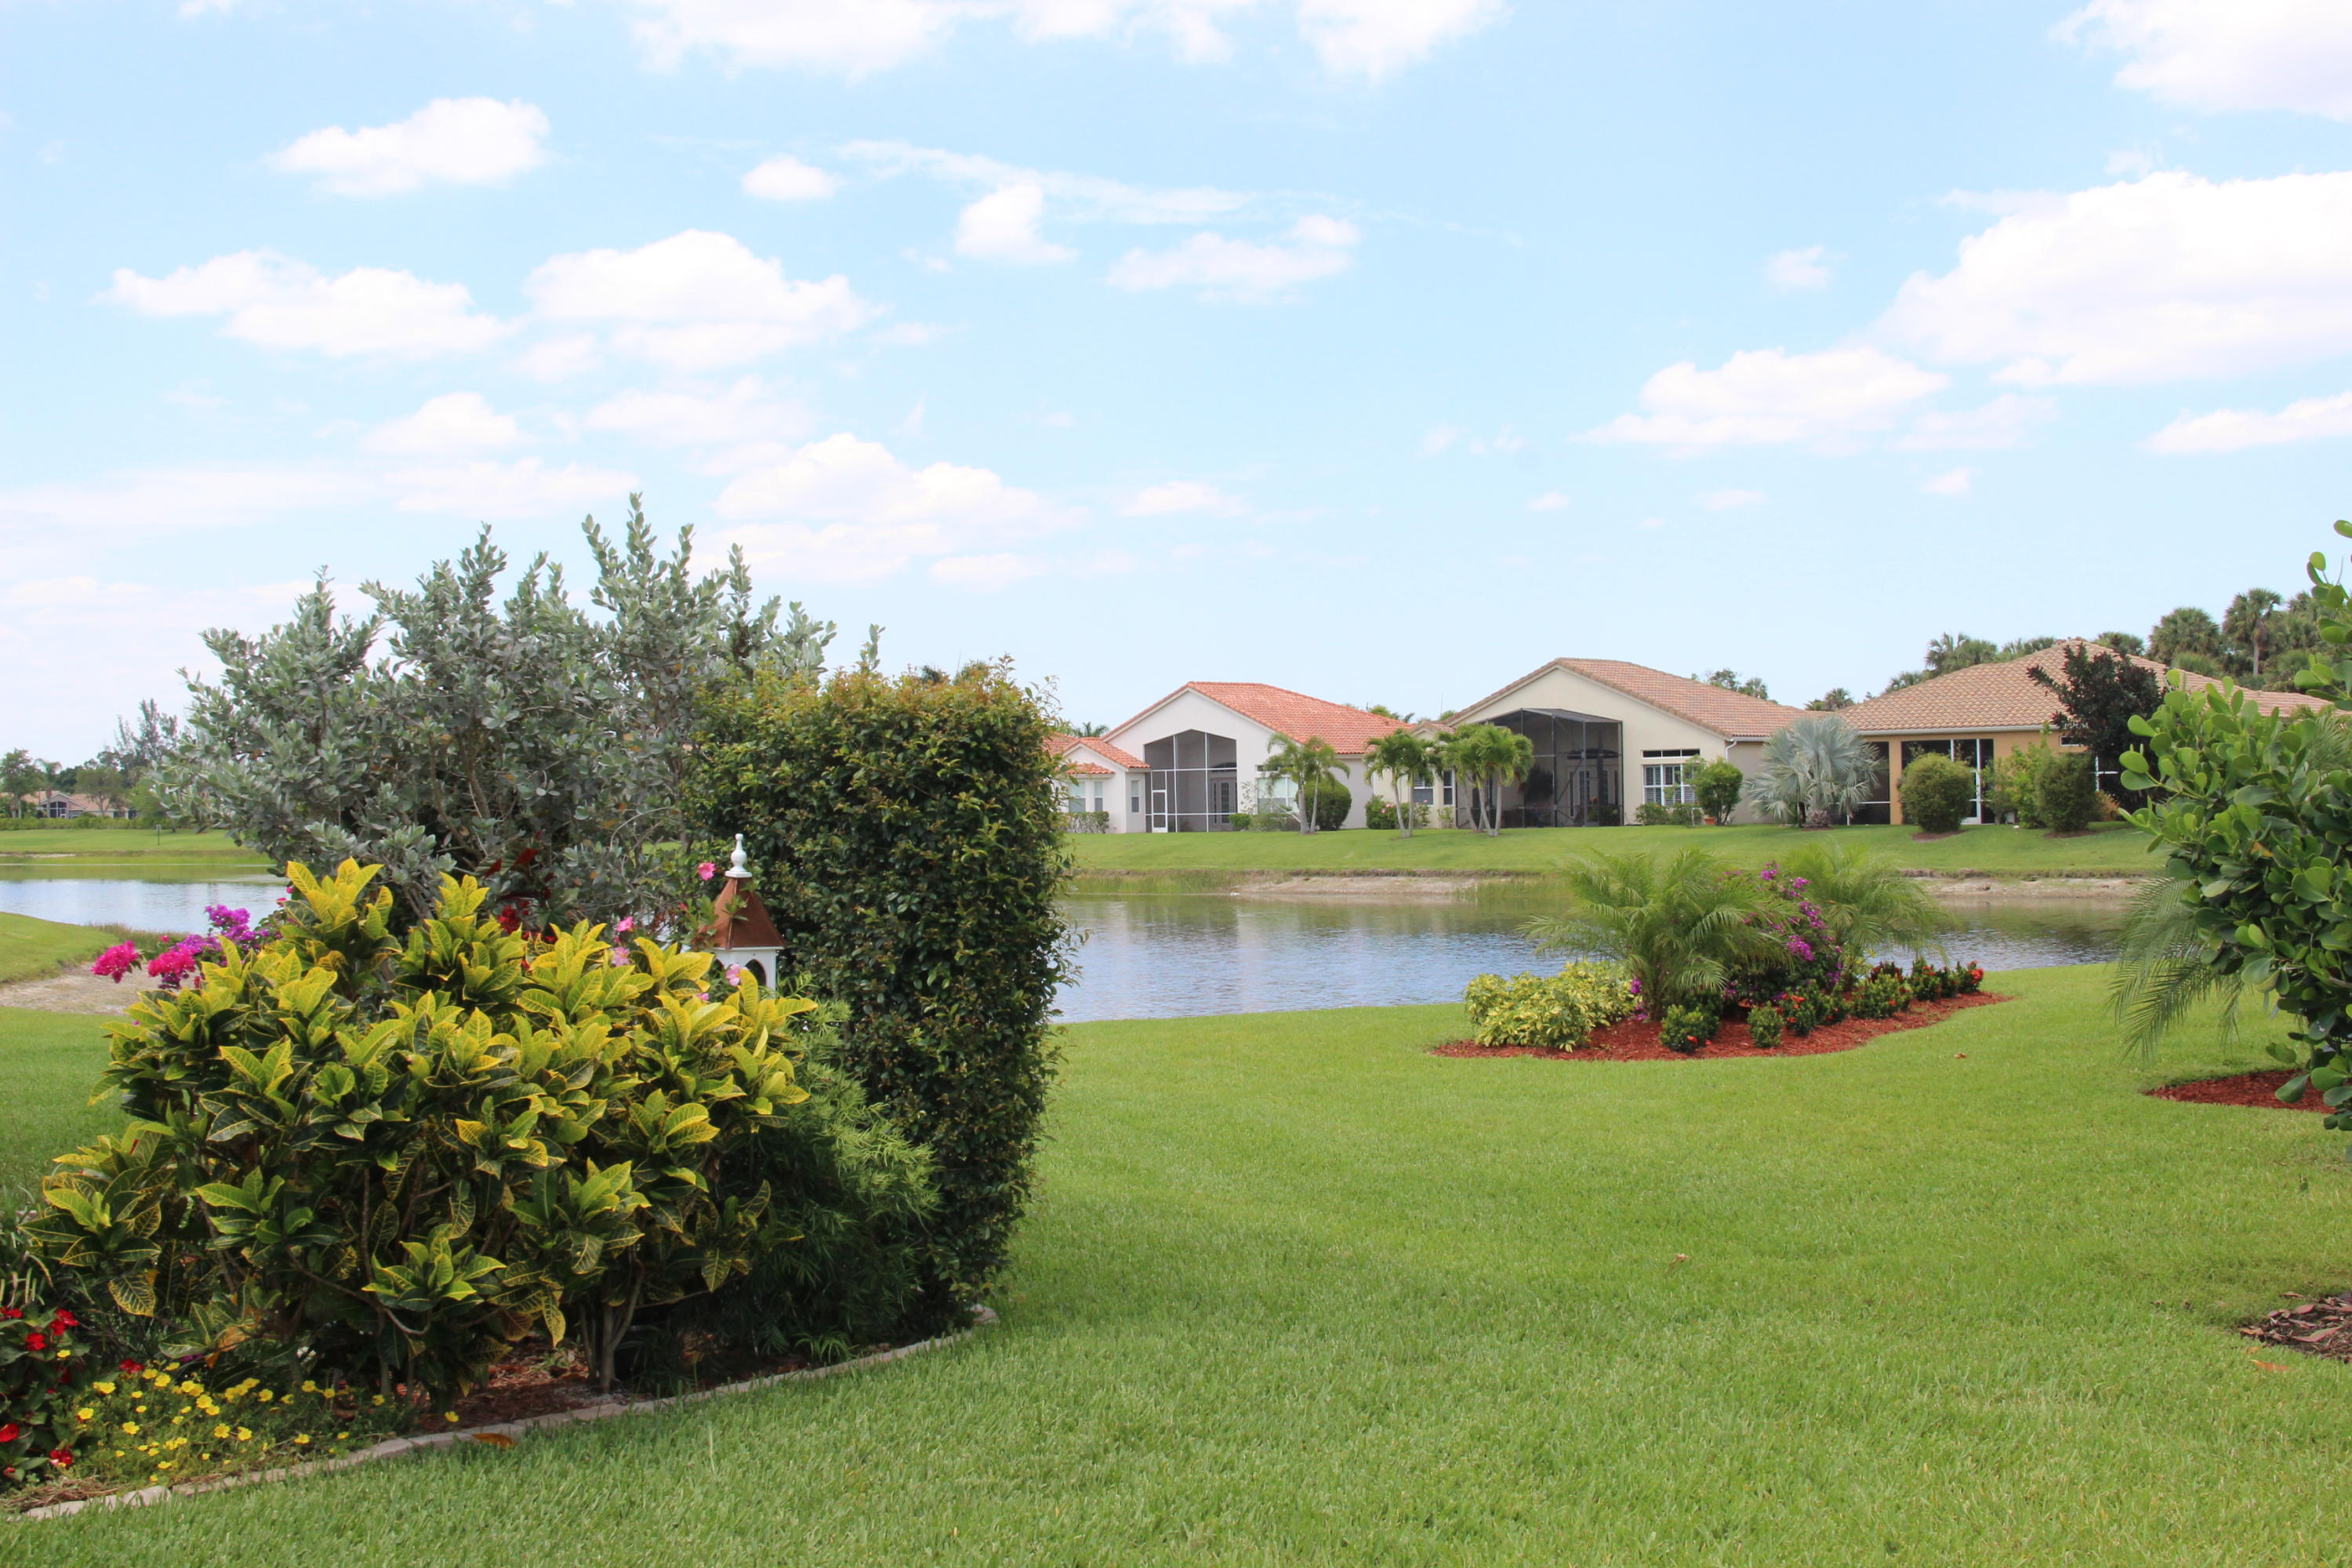 Paradise can be yours, in this spacious ''PERDIDO KEY'' home. Enjoy sitting on the lanai with a  lake view, 3 bedrooms, 2 1/2 baths, Plus Den, 2 1/2 car garage with golf cart door, built in 2015. Private master suite, split bedroom floor plan make this a dream home for Florida living. Hurricane impact windows throughout, alarm system, gas water heater. Gourmet kitchen SS appliances, oversize granite island, 5 burner gas stove, French door refrigerator, double oven, convection oven, 42'' cabinets, walk in pantry. Many upgrades, custom landscaping. crown molding, trey ceiling, hunter Douglas remote control window treatments, custom built in closets with motion light sensors. Spa shower in master bath with double shower heads and spa bench. Move in ready shows like a model